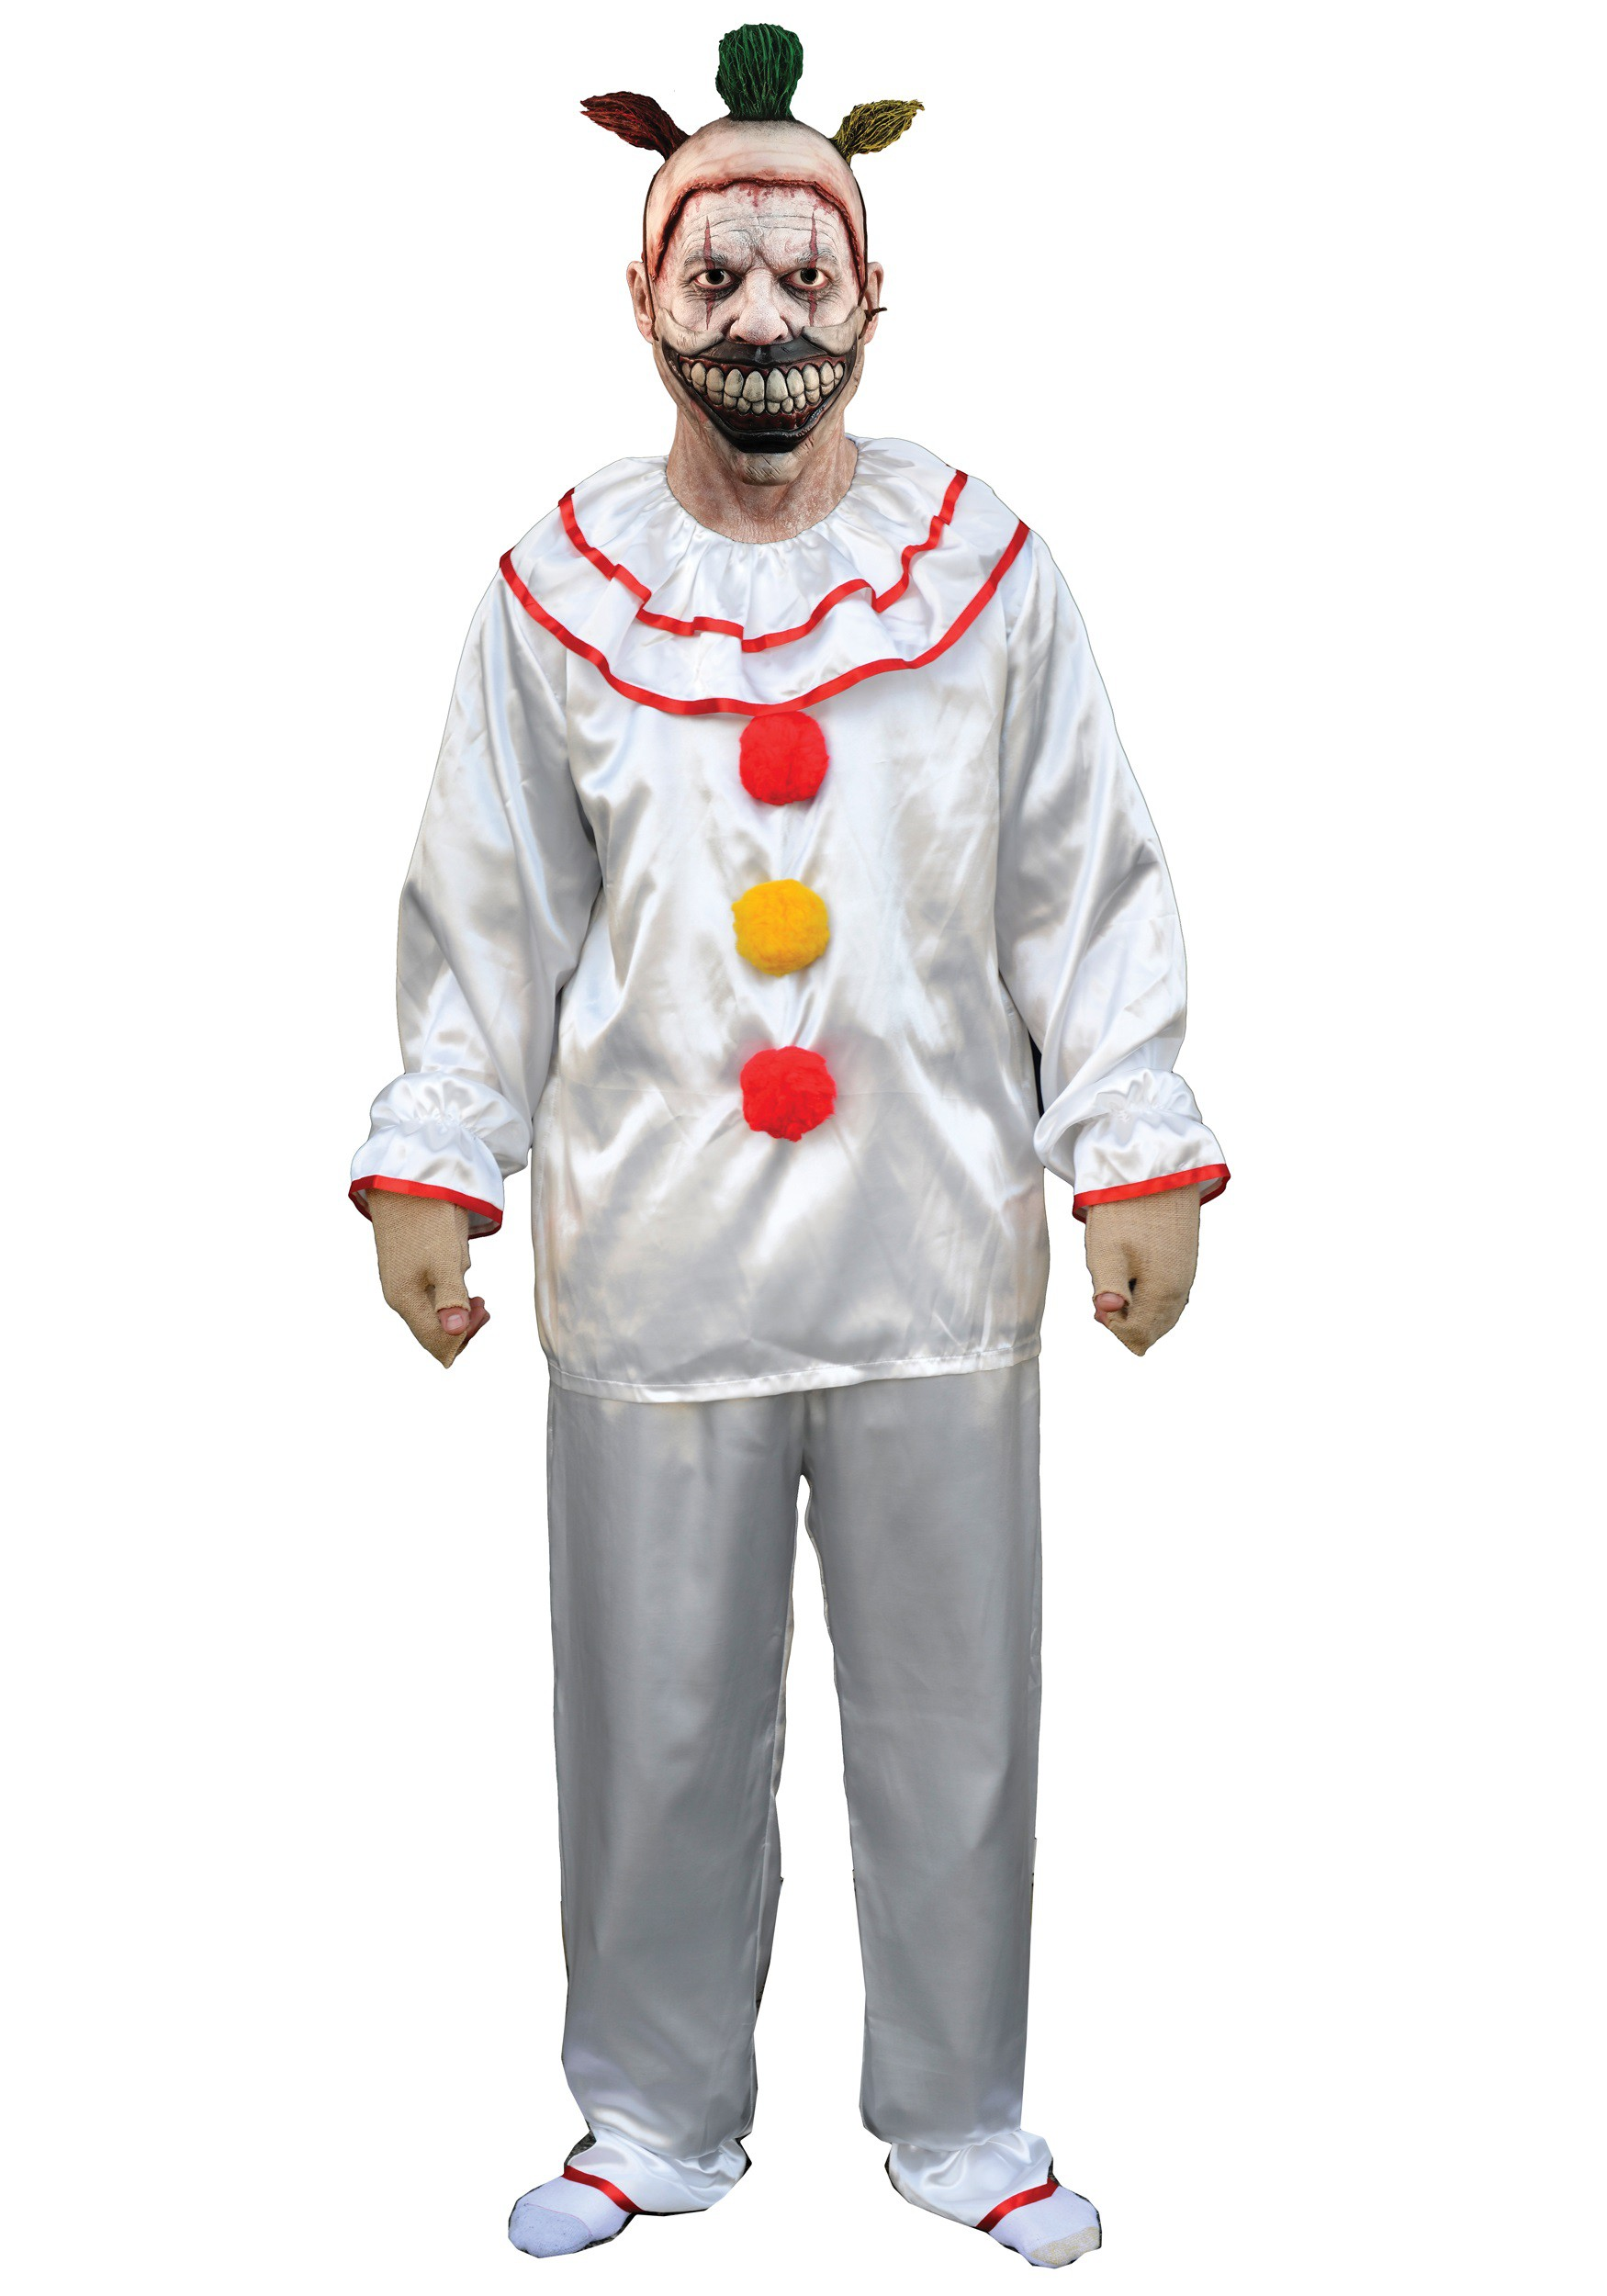 clown costumes adult kids clown halloween costume american horror story adult twisty the clown costume